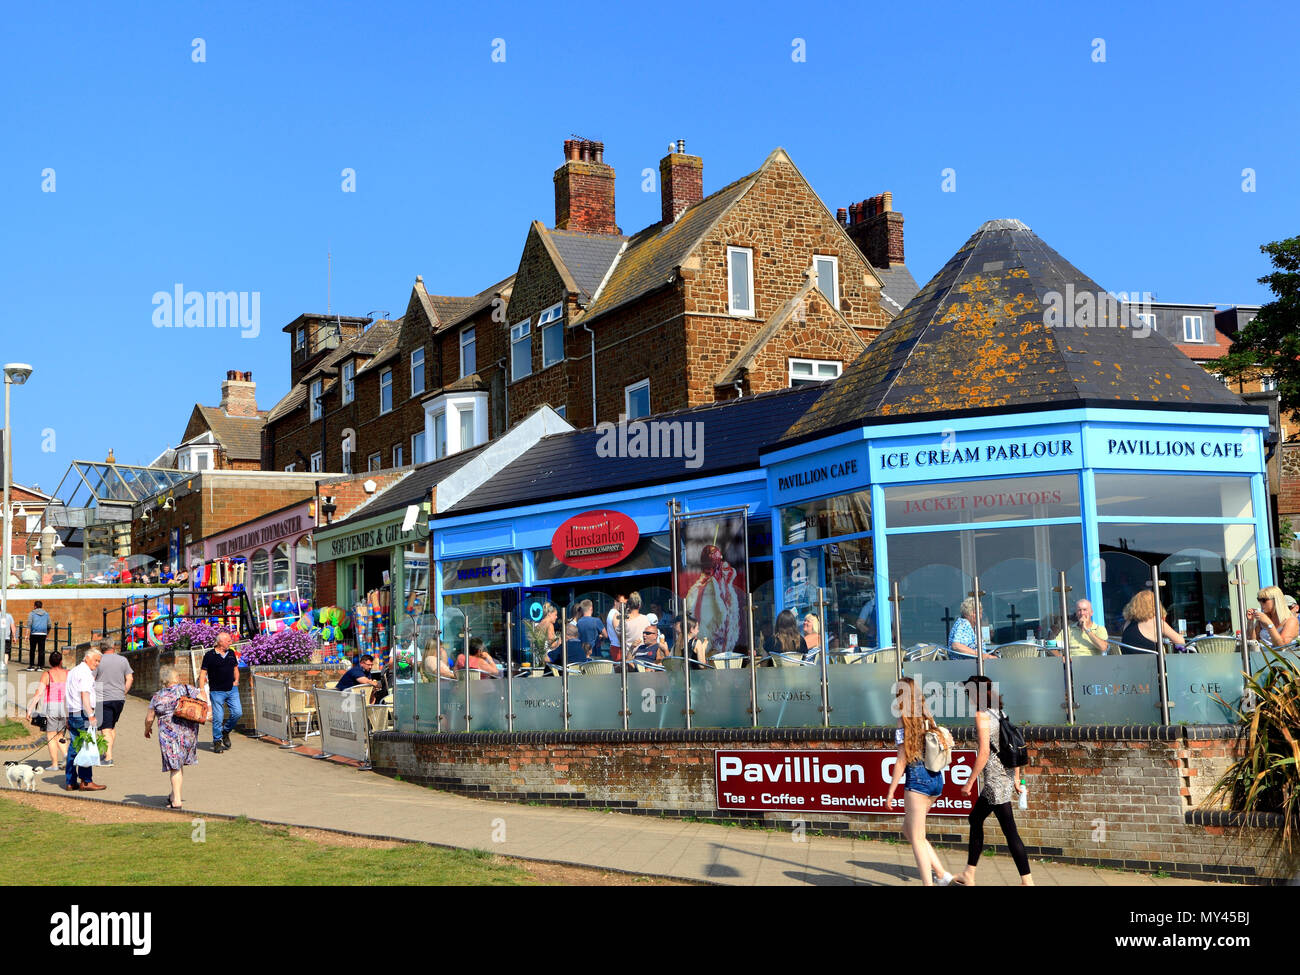 Hunstanton, shops, cafes, ice cream parlours, girt shops, seaside resort, town, Norfolk. Stock Photo